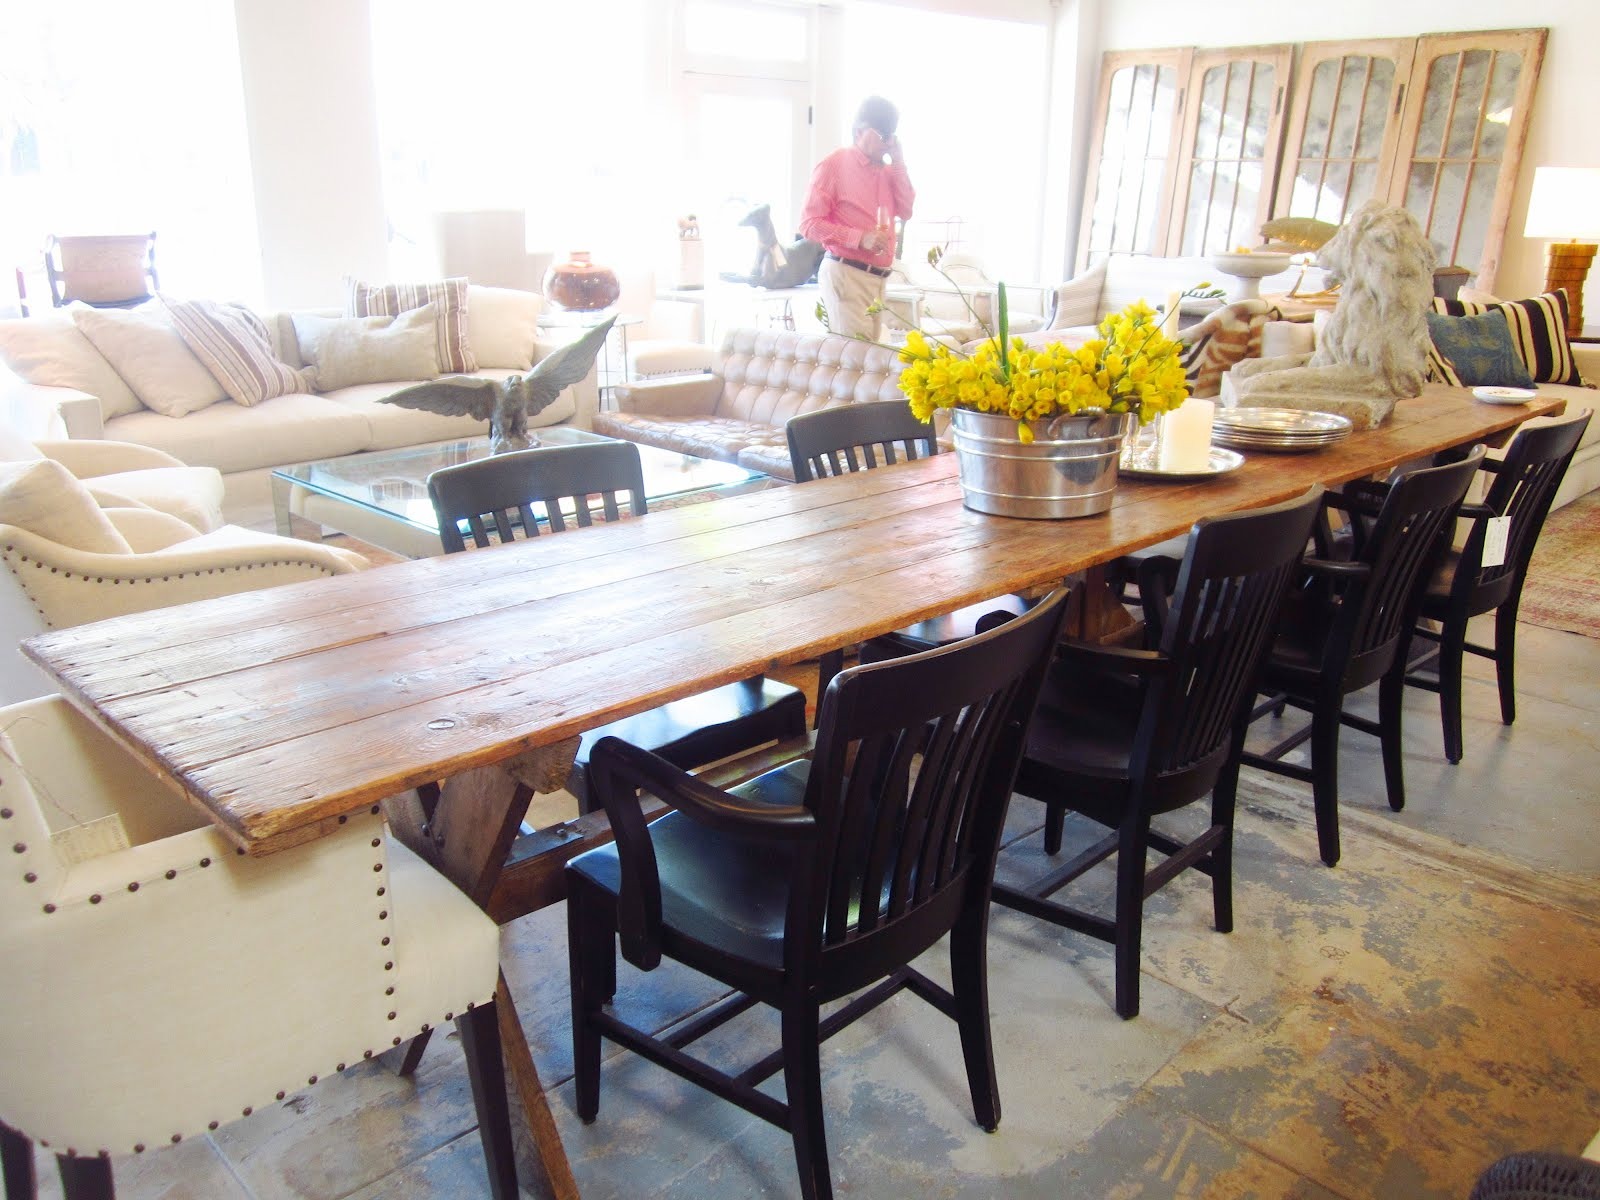 Farmhouse Dining Table And Chairs Mitchell And Co Custom Furniture F A Q 39s